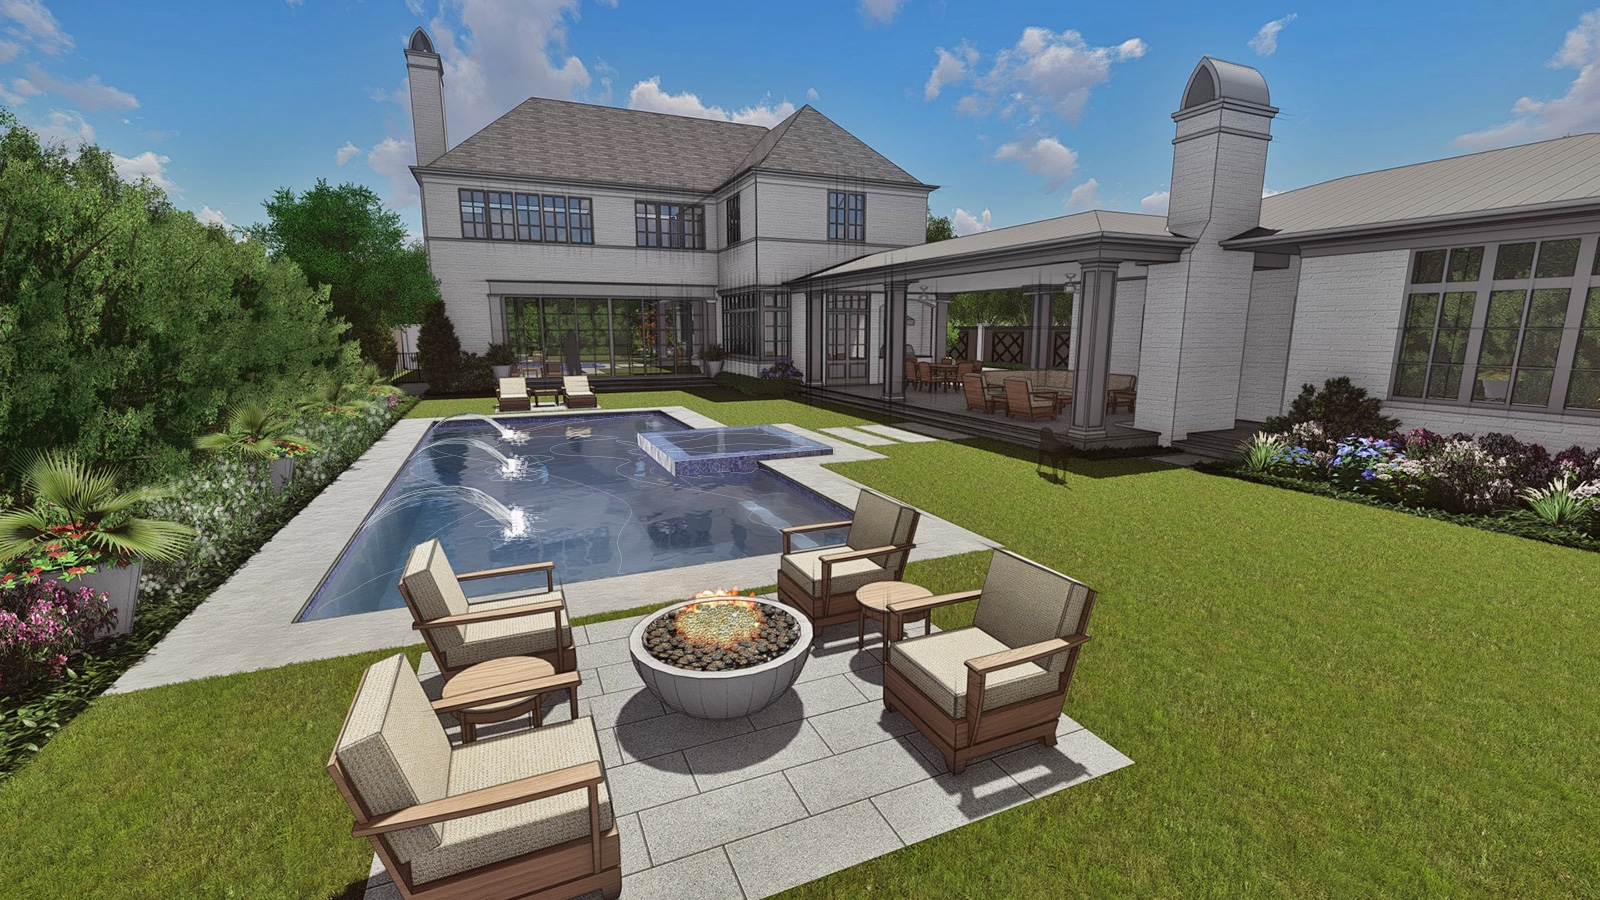 FIRE PIT & POOL VIEW TO HOUSE